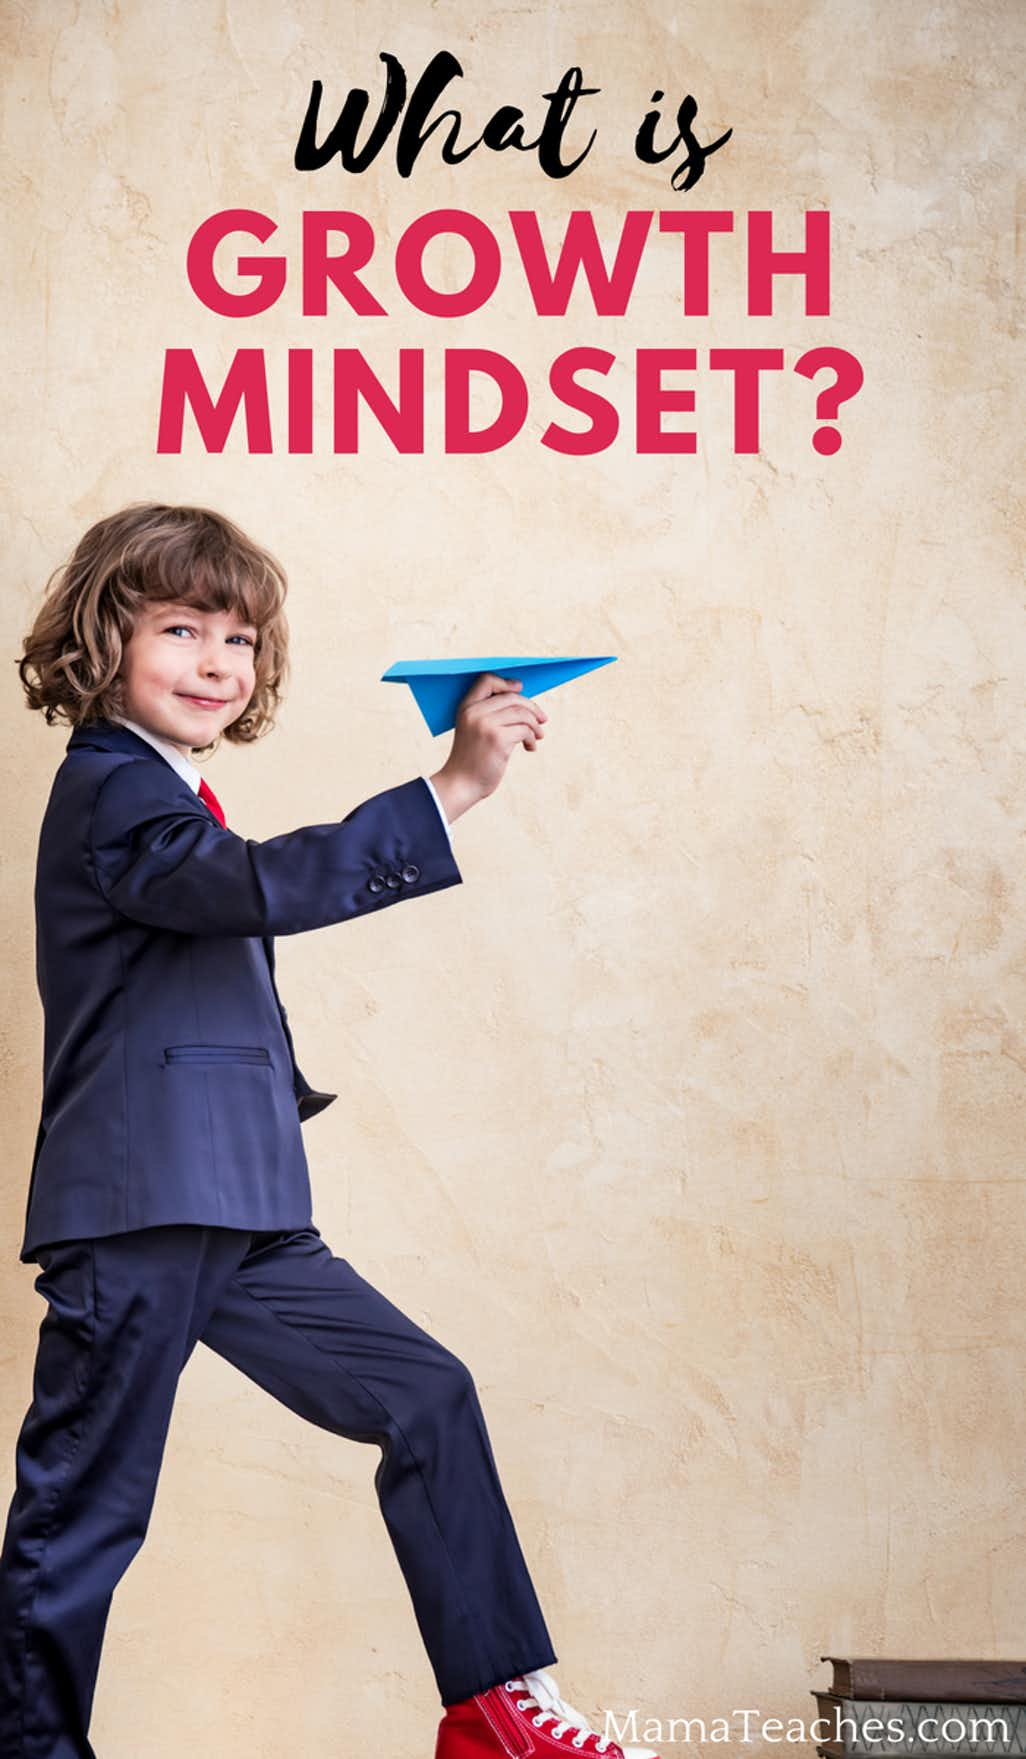 What is Growth Mindset and why is it important to encourage kids to have one?